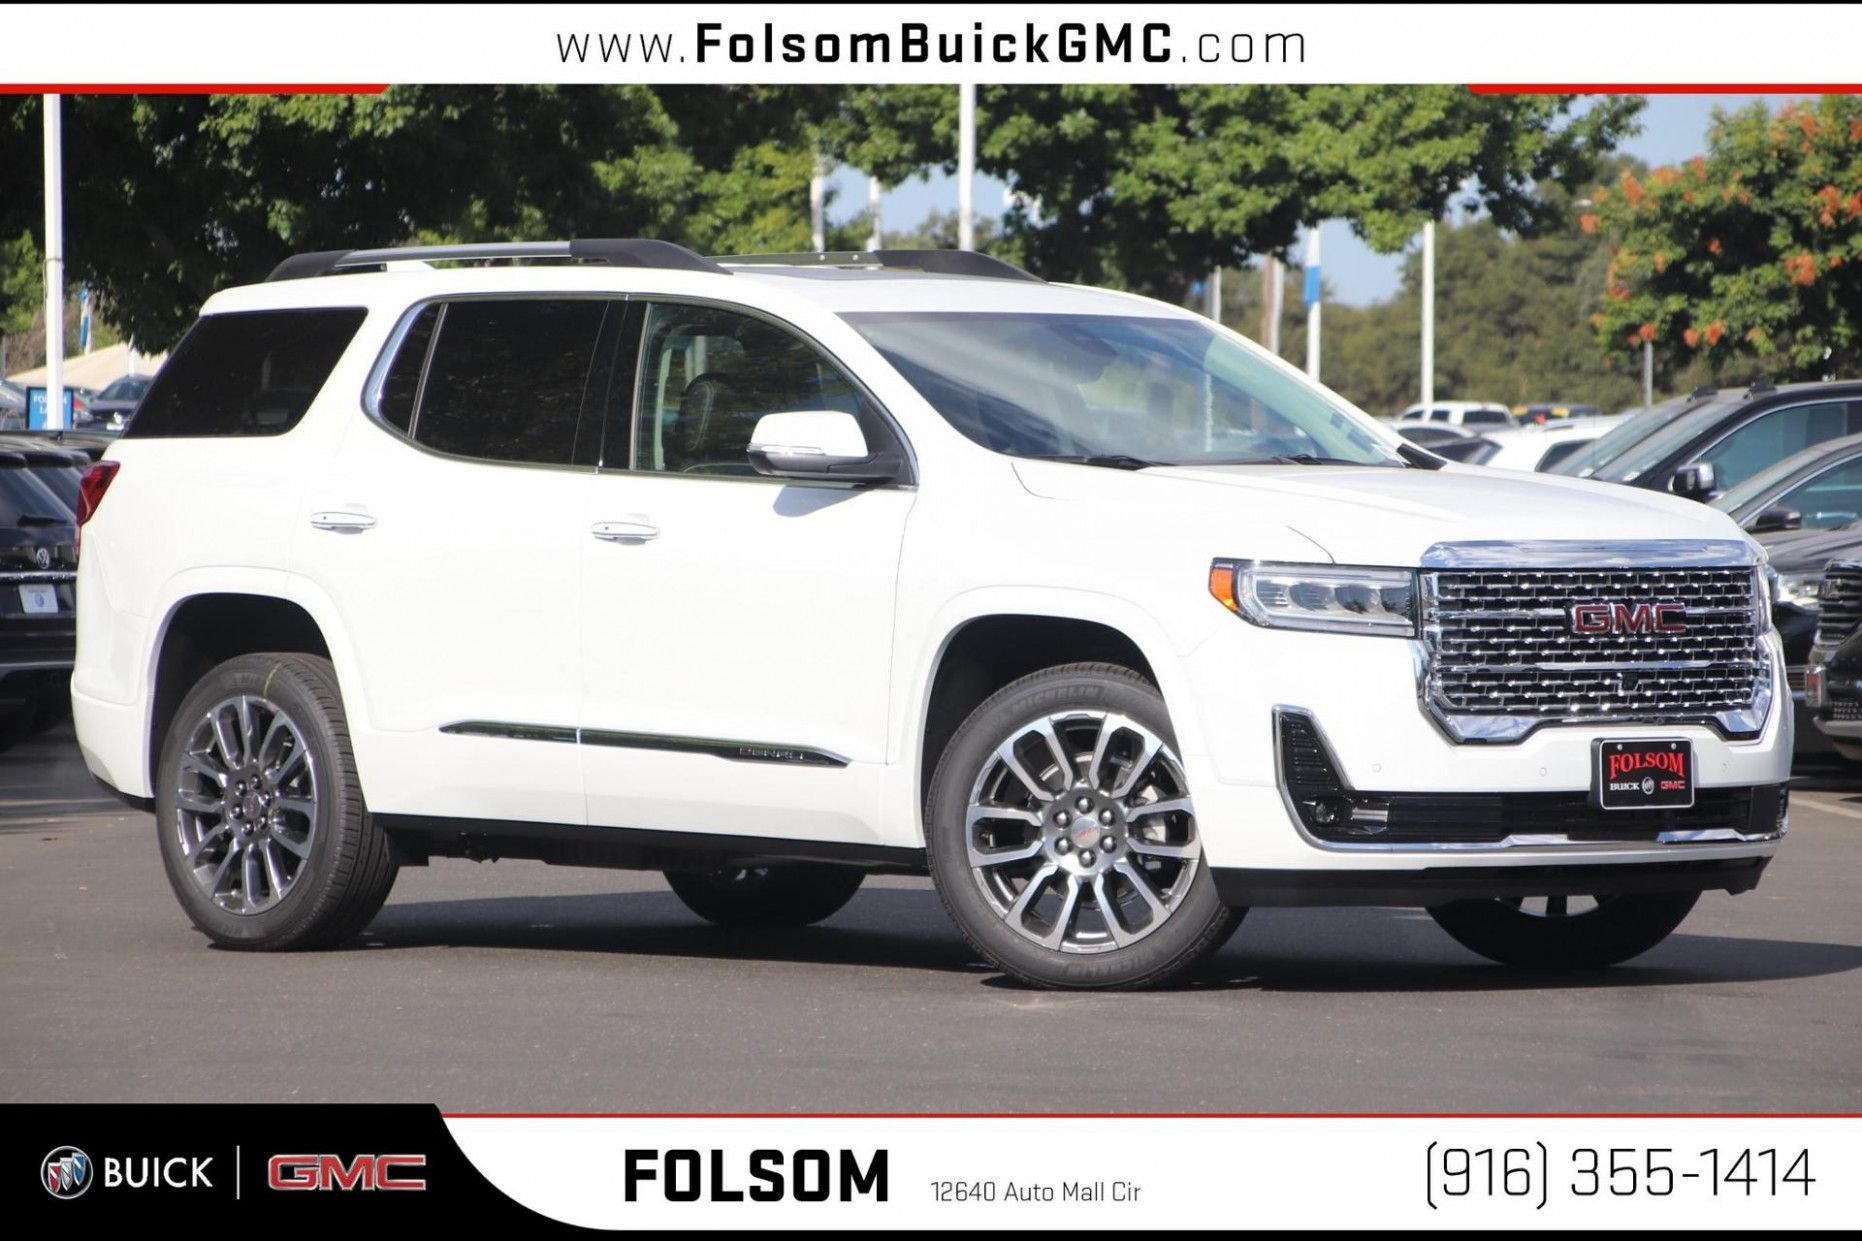 2020 Gmc Acadia Changes Research New Gmc Cartage Are Accepted For Their Asperous Designs And Exceptional Interiors In Denali Trim And In 2020 Gmc Acadia Car Review